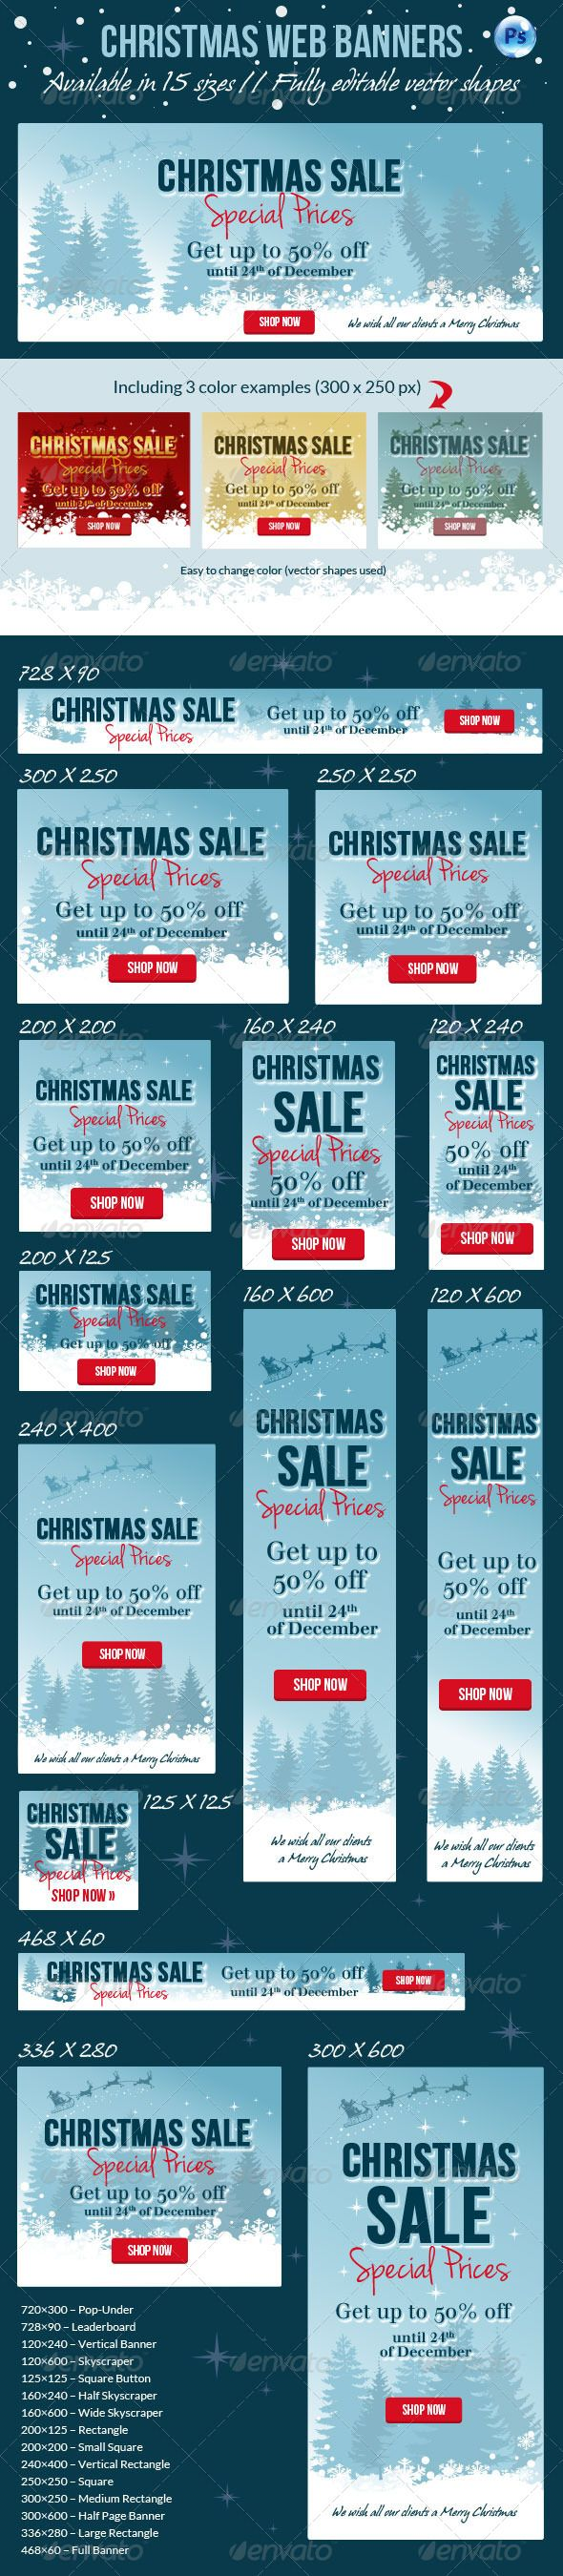 Christmas Web Banner Template PSD | Buy and Download: http://graphicriver.net/item/christmas-web-banner/6304851?WT.ac=category_thumb&WT.z_author=corrella&ref=ksioks